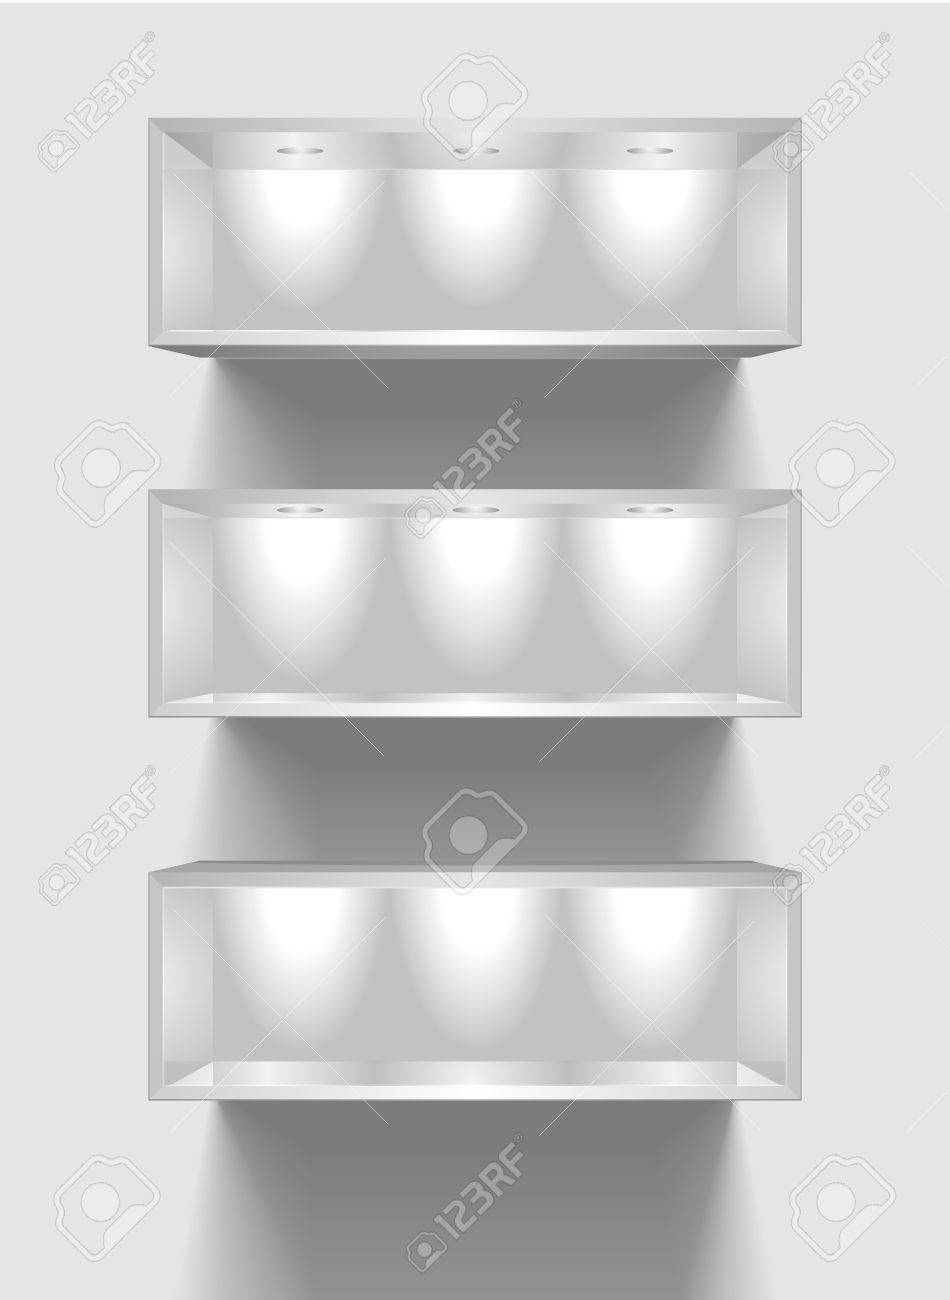 detailed illustration of exhibition shelves with light sources Stock Vector - 17020286